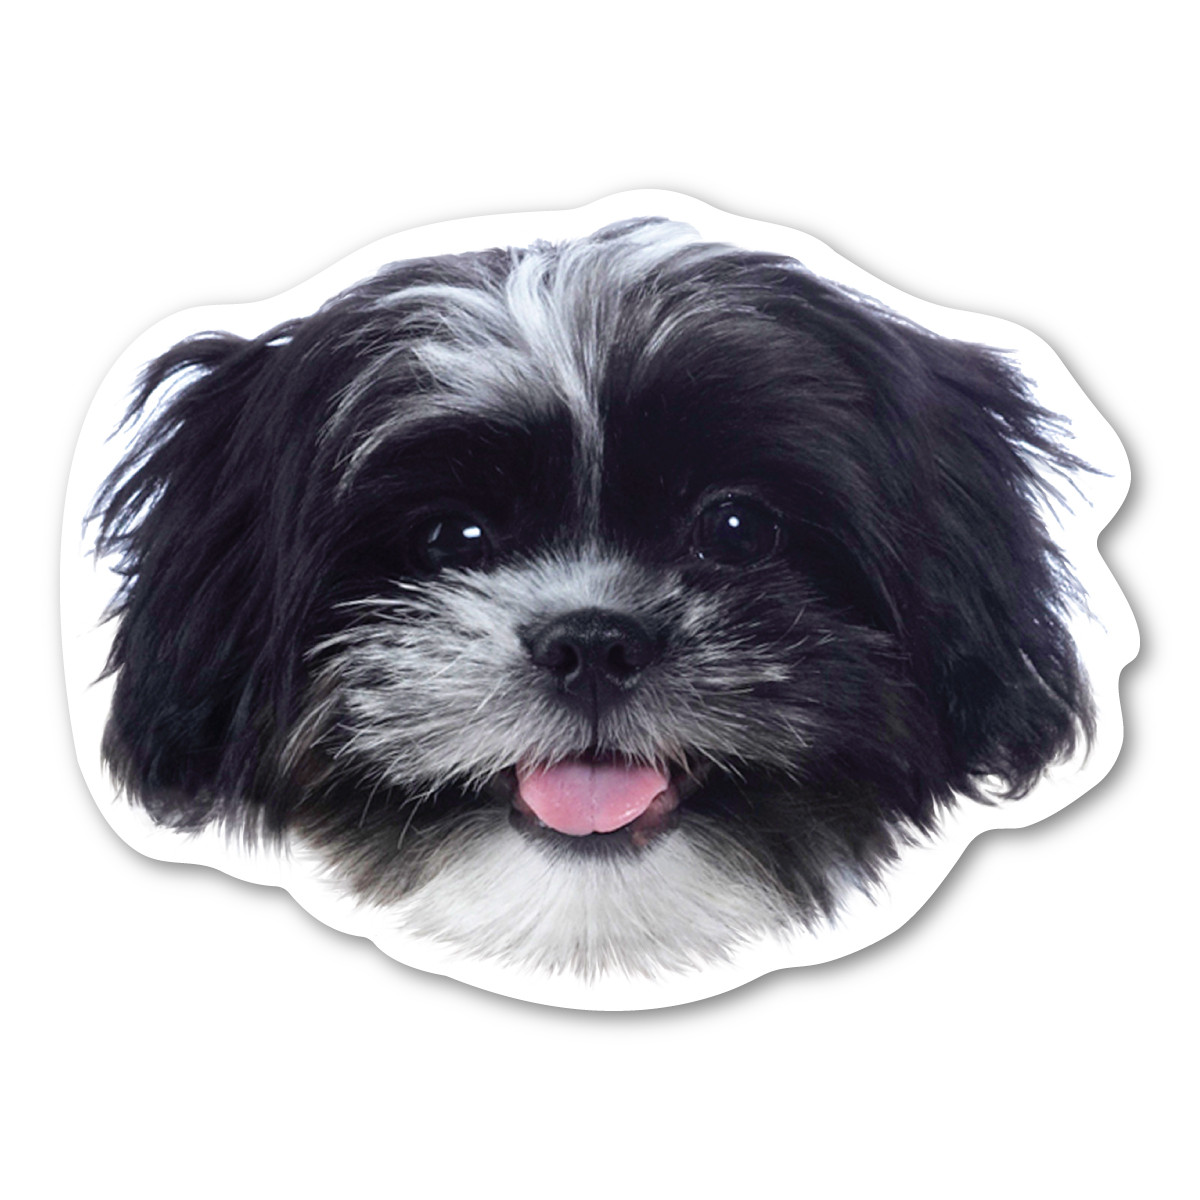 (Black and White) Shih Tzu Magnet | Magnet America